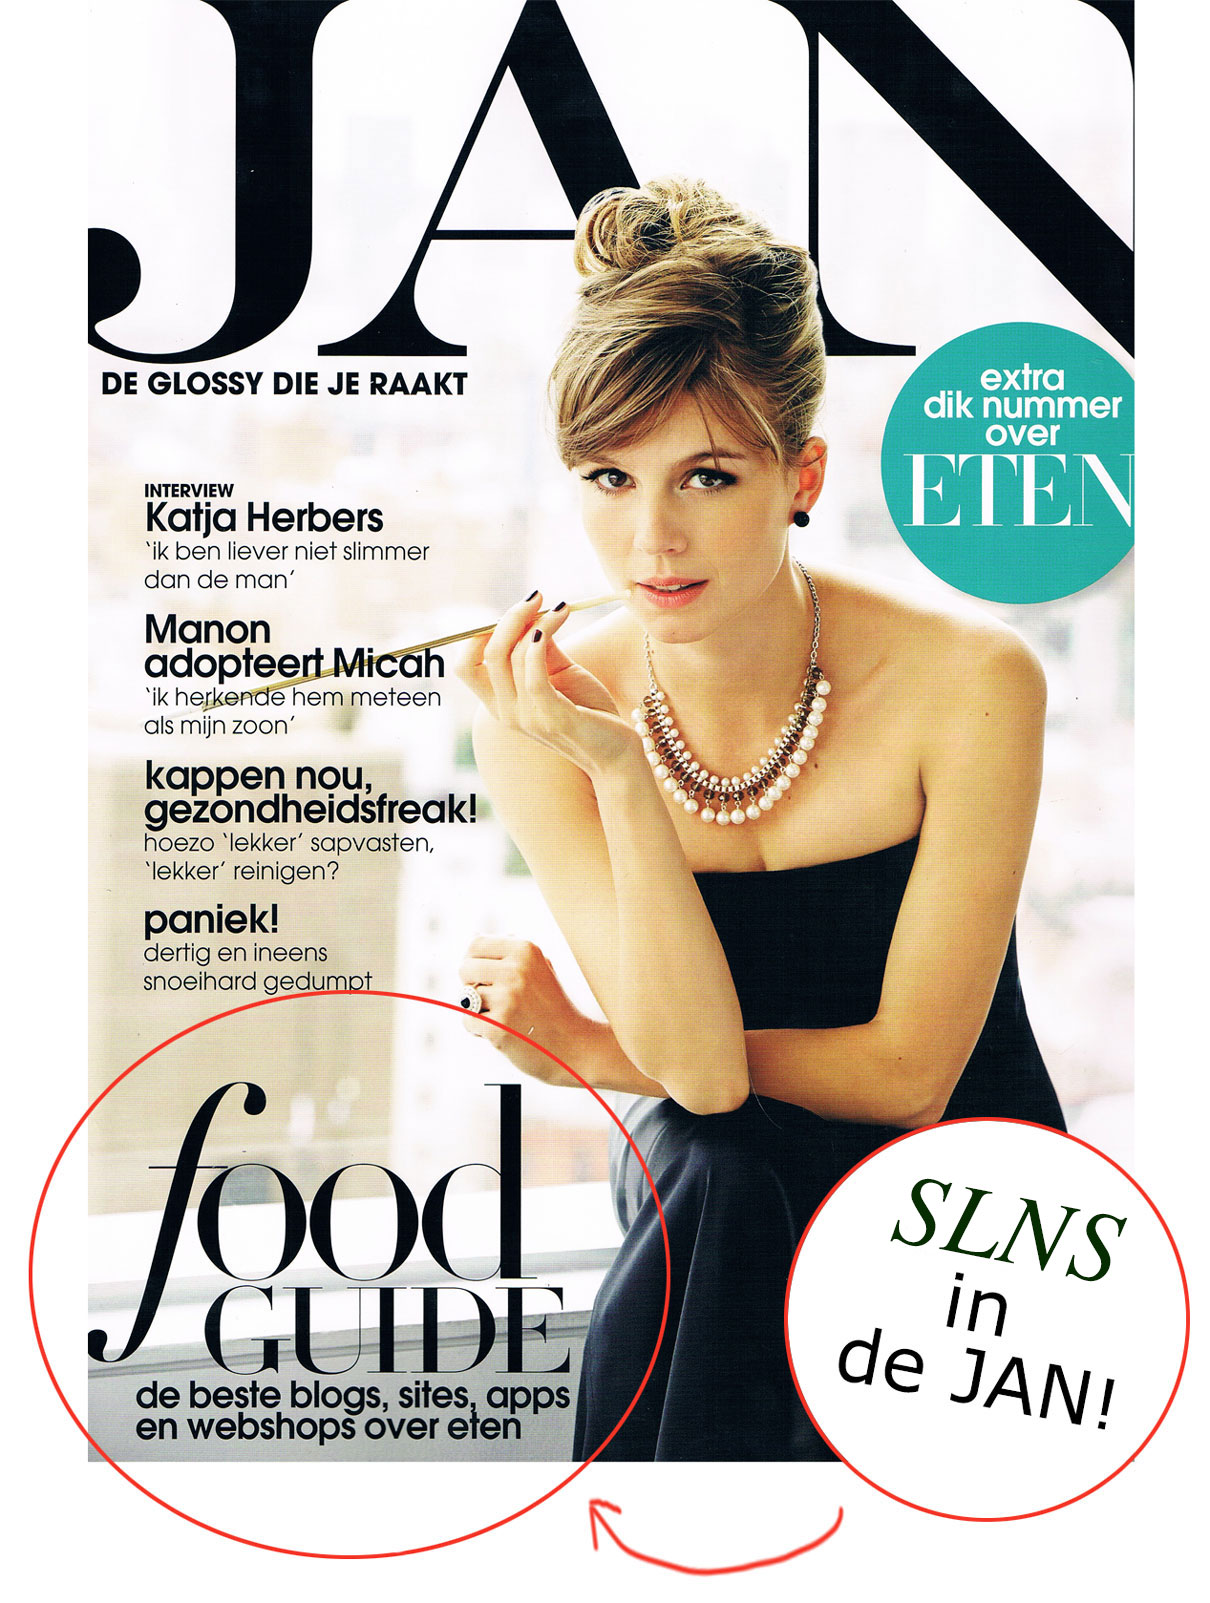 ShareLoveNotSecrets_in_de_Jan_Food_Guide